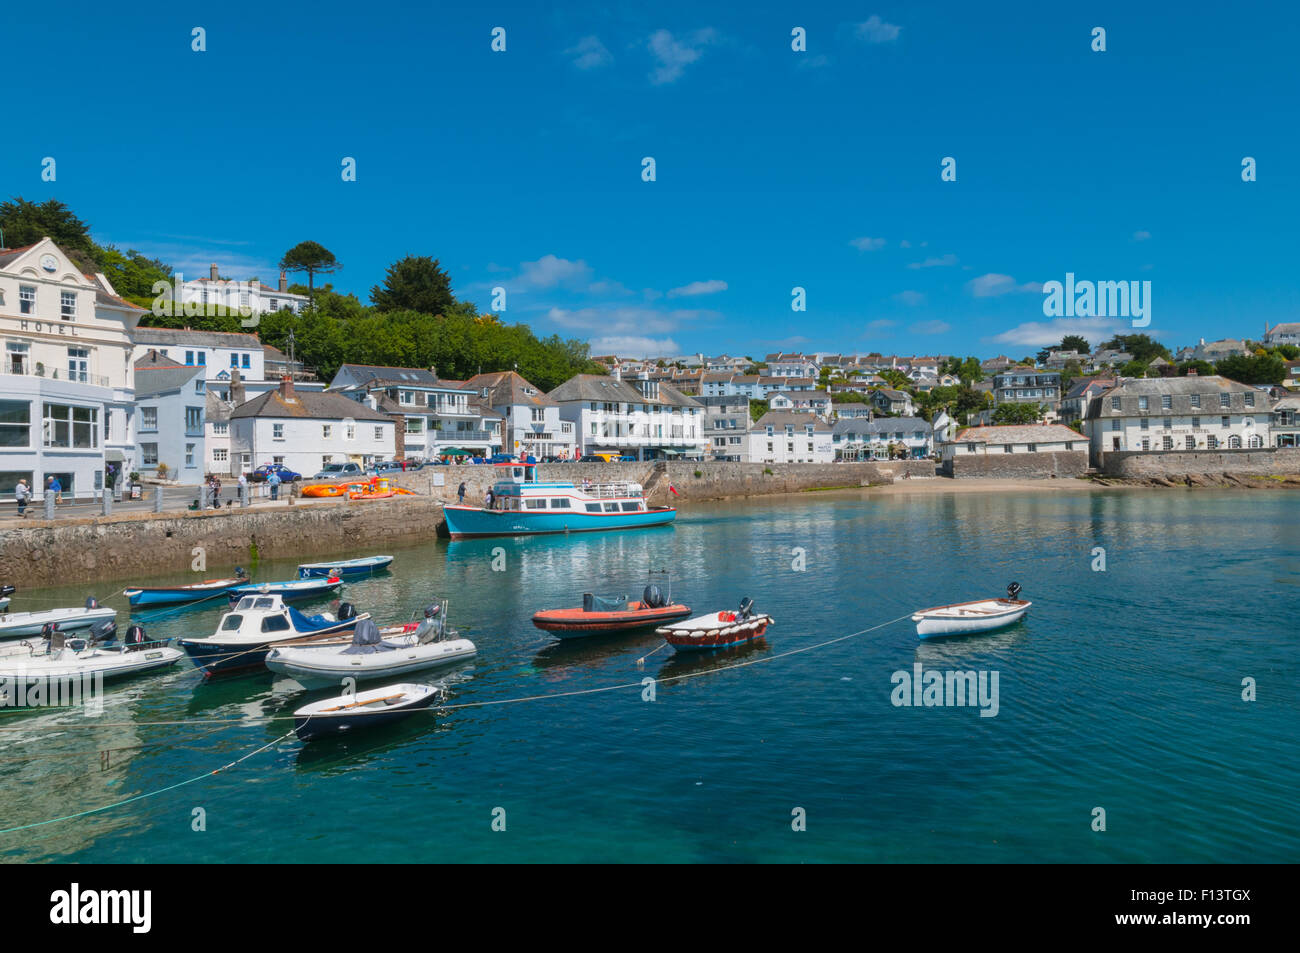 Boats in St Mawes Harbour St Mawes Cornwall England - Stock Image